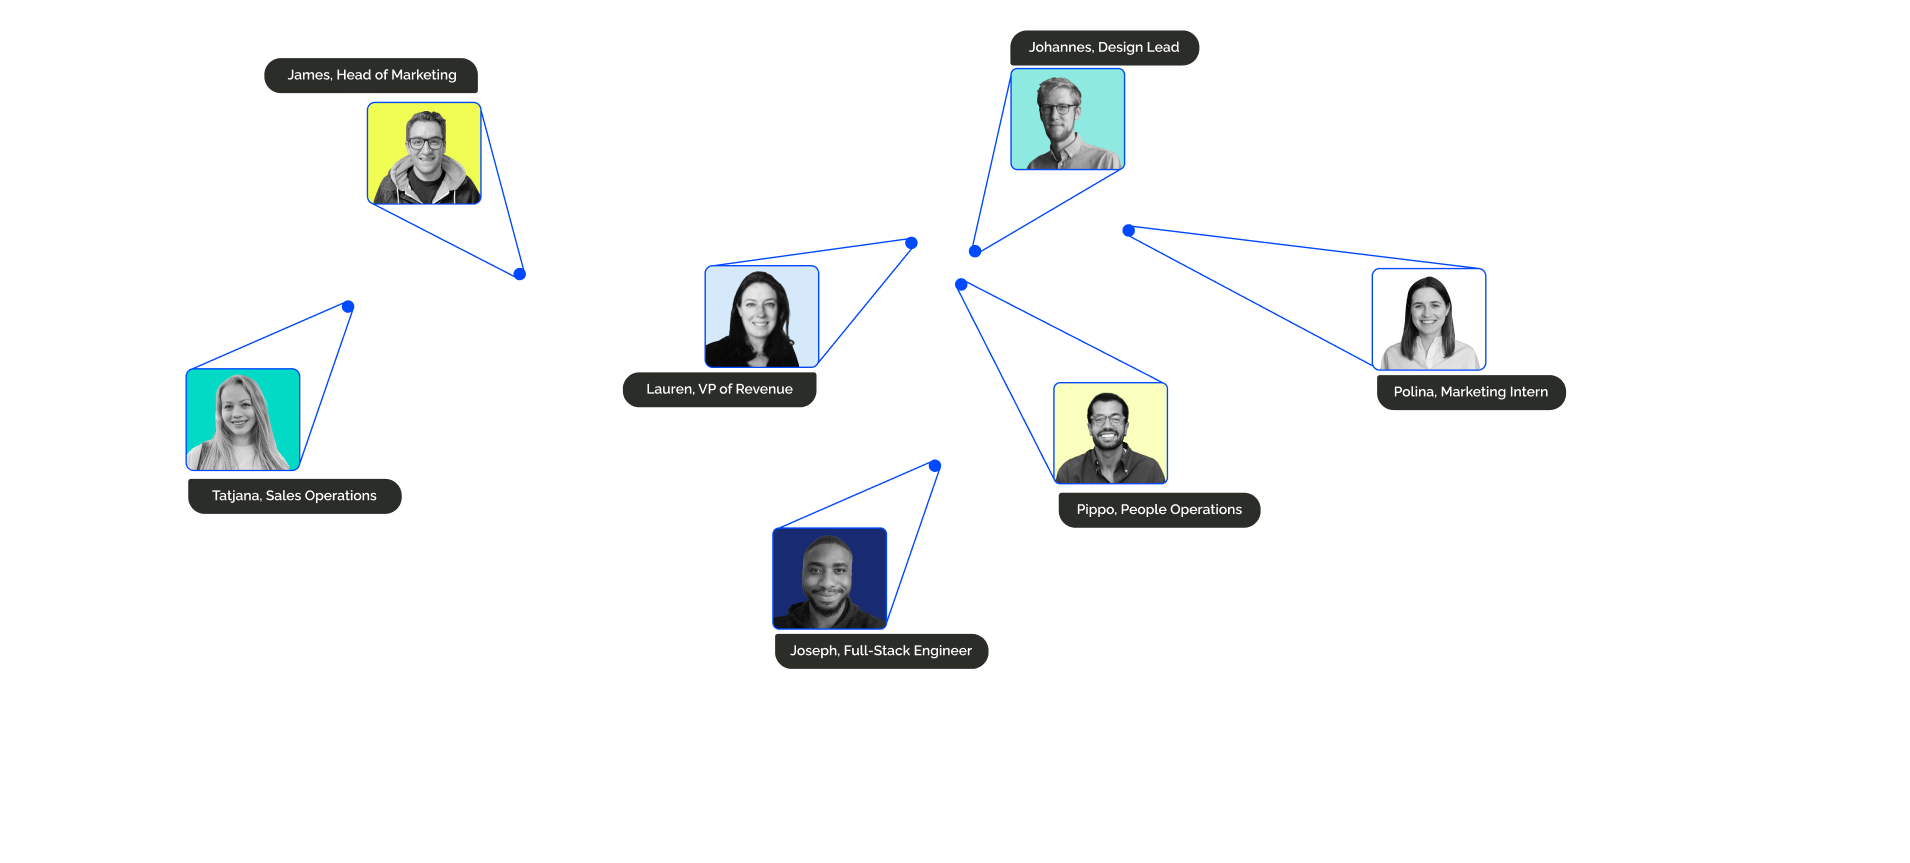 Demodesk is a global team that can work from anywhere in the world or in any of our offices - Munich, SF, and London